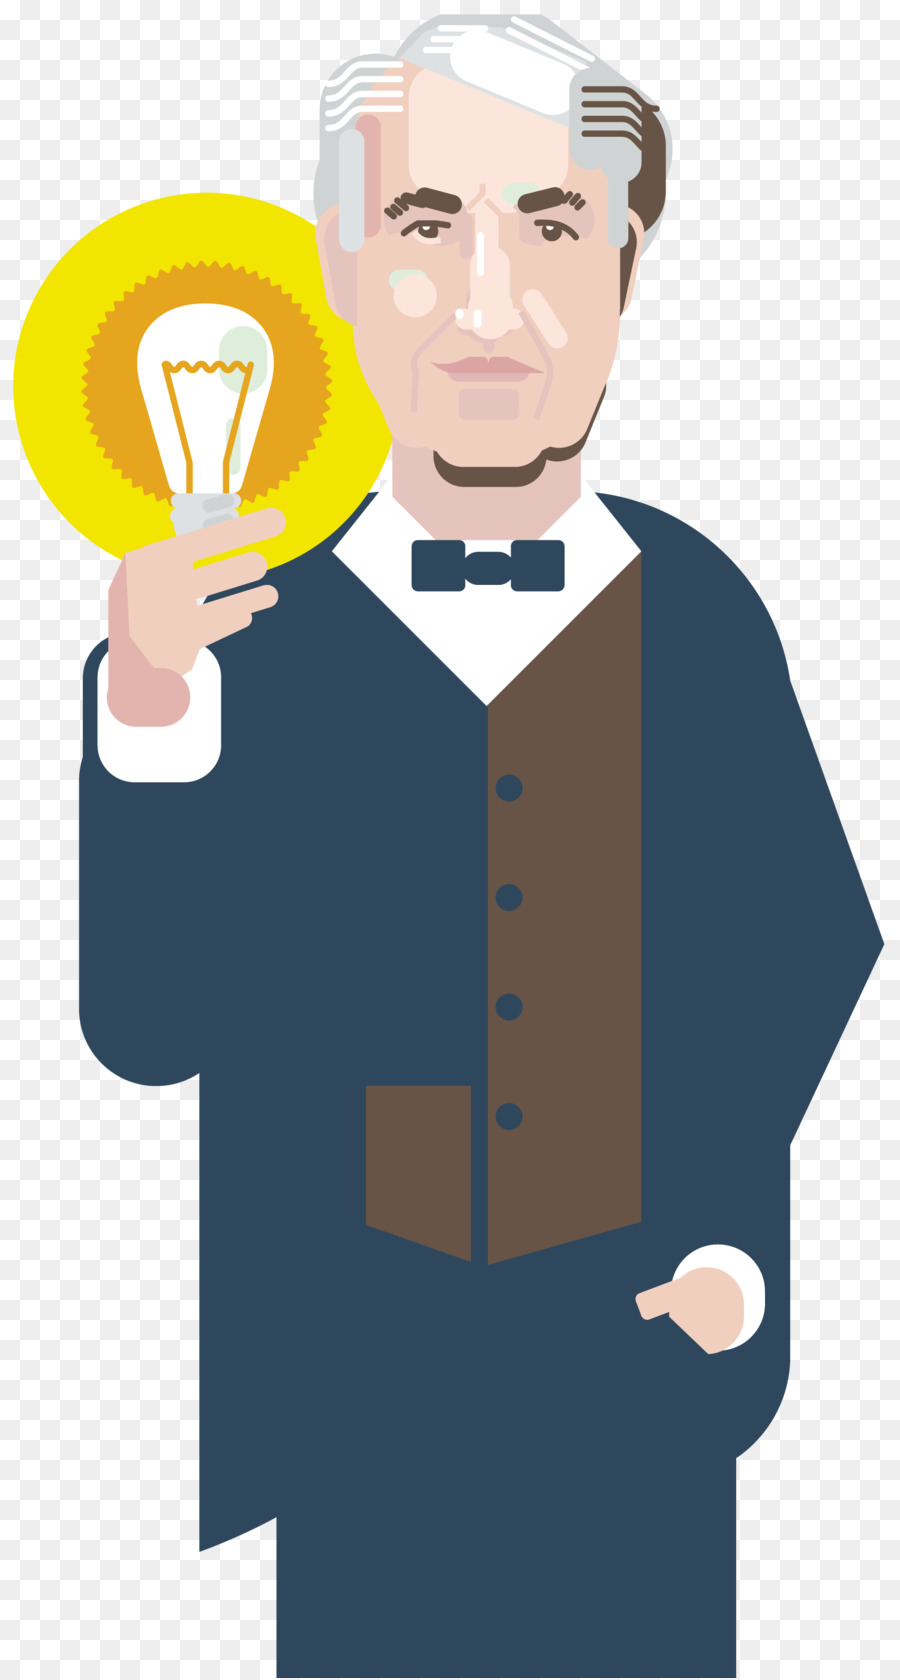 thomas edison phonograph cylinder businessperson clip art others rh kisspng com Thomas Edison Light Bulb Thomas Edison Poster